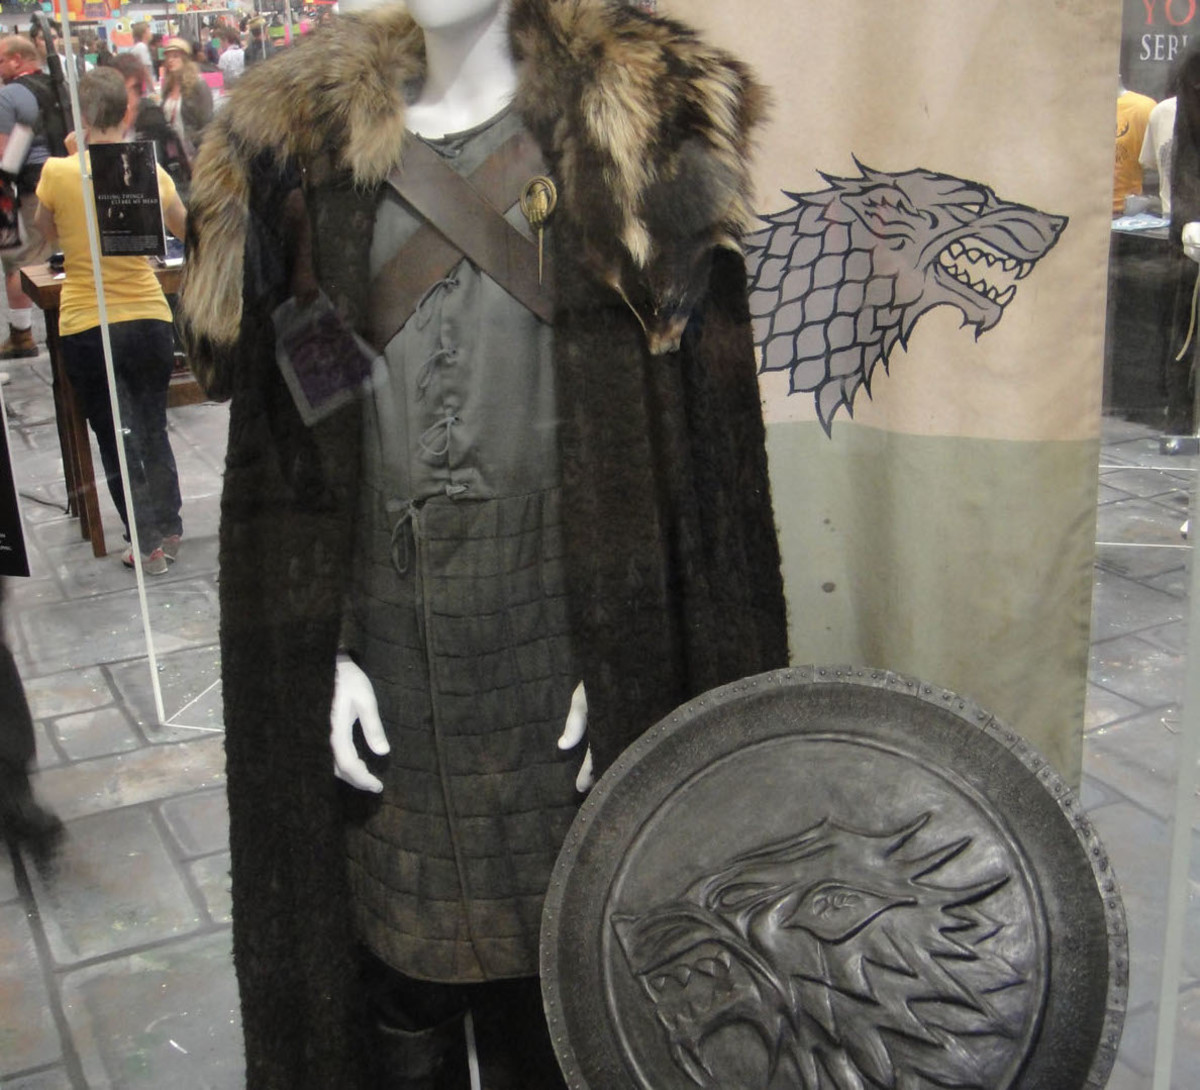 The official Eddard Stark costume at an HBO booth.